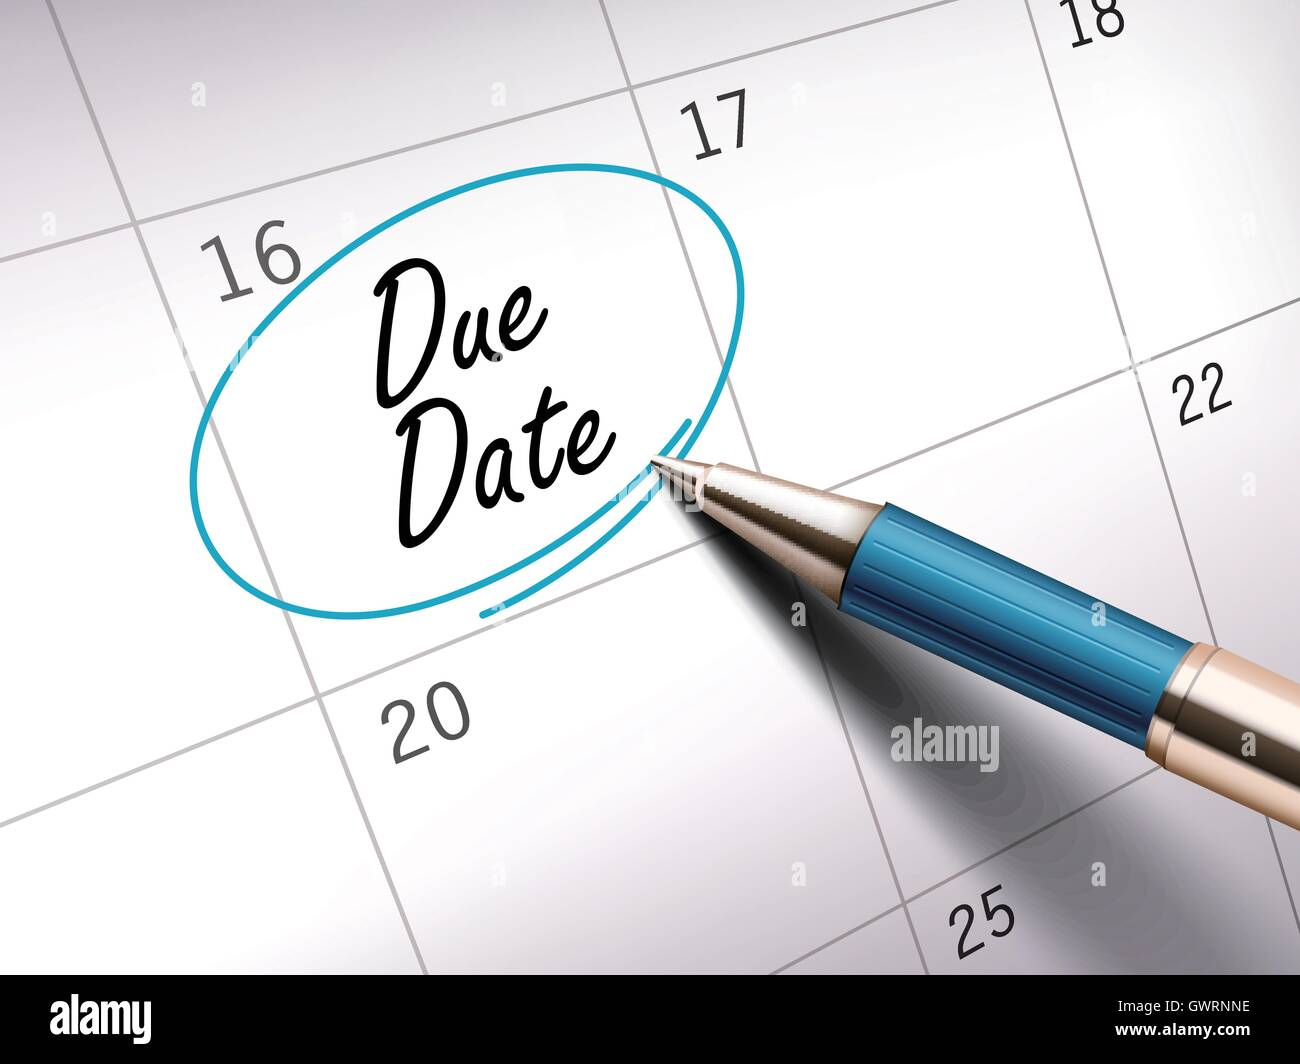 Due Date Words Circle Marked On A Calendar By A Blue Ballpoint Pen